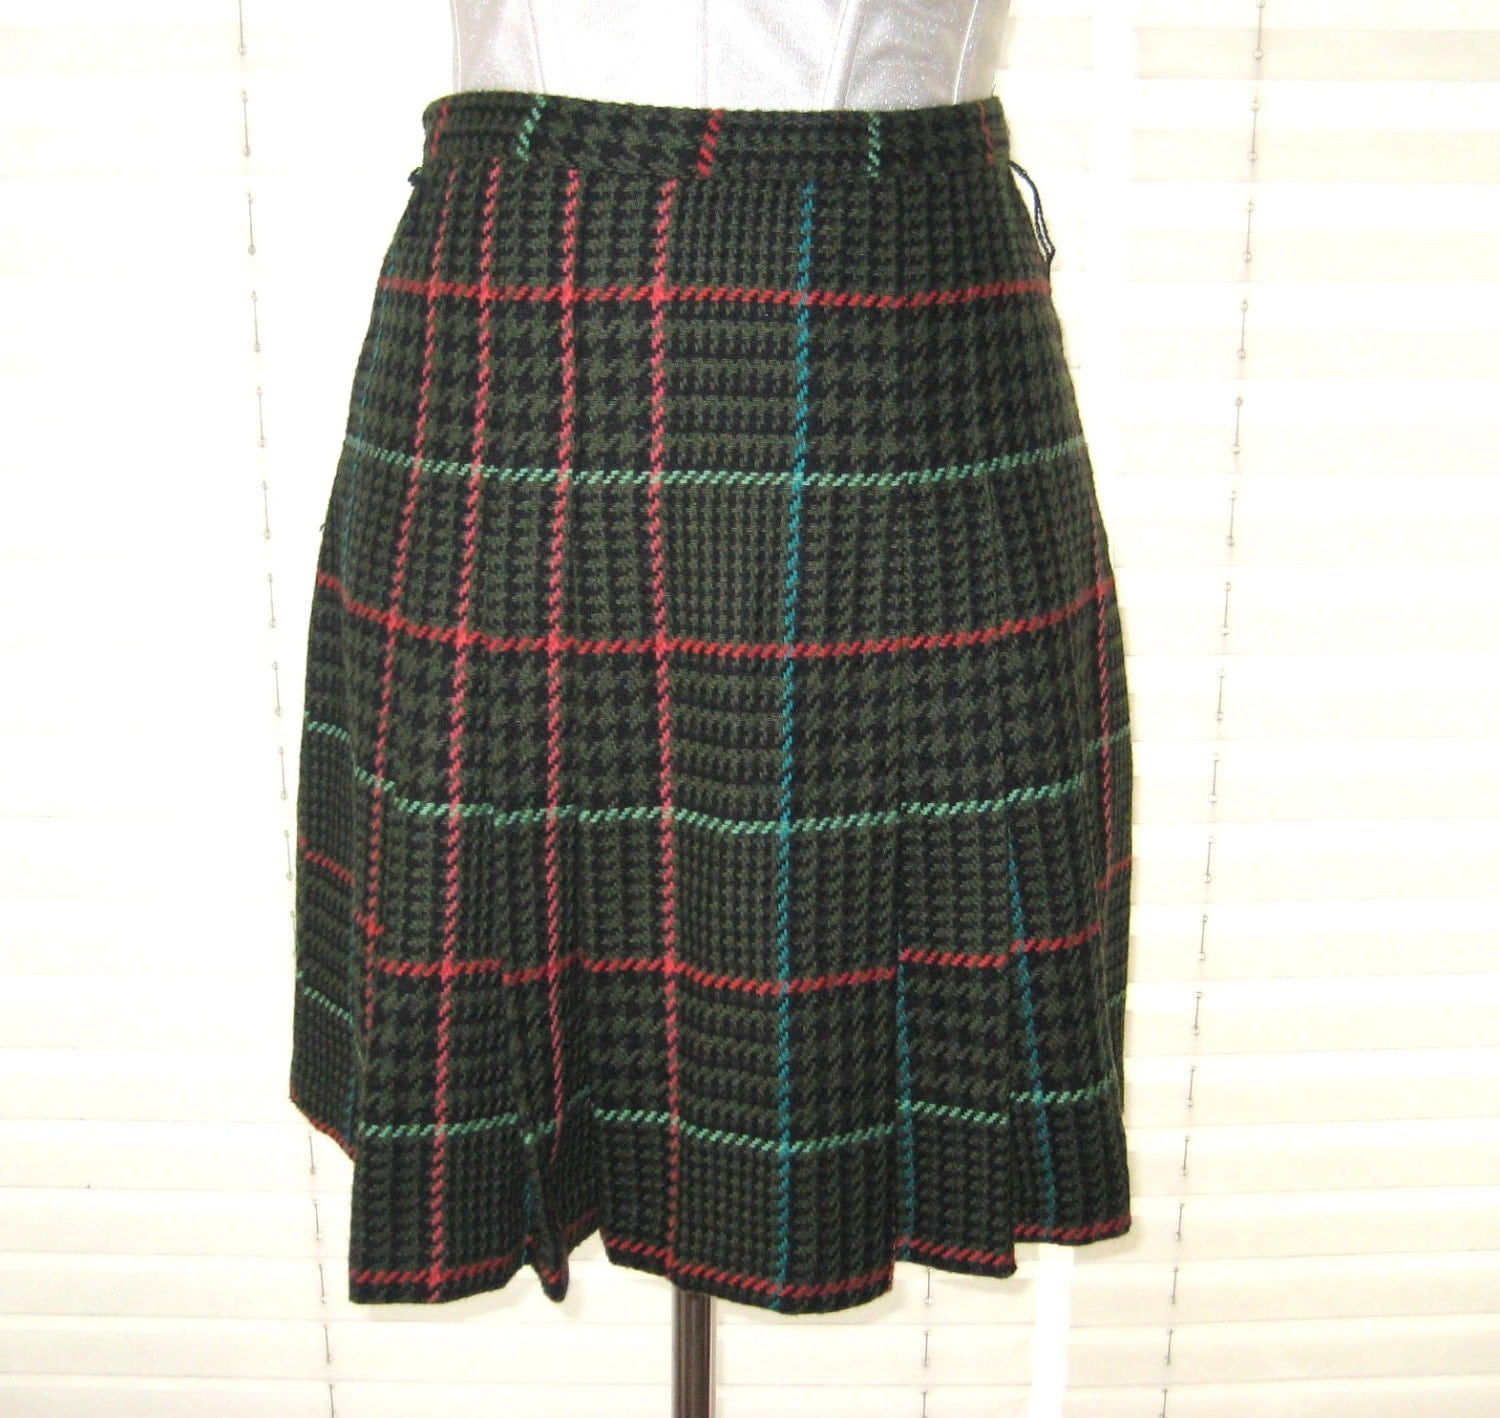 Private Schooled Plaid Skirt cuz they've been bad baby! Teach 'em a lesson in this cute AF pleated mini skirt that has a plaid detail all ova N' side button closures.